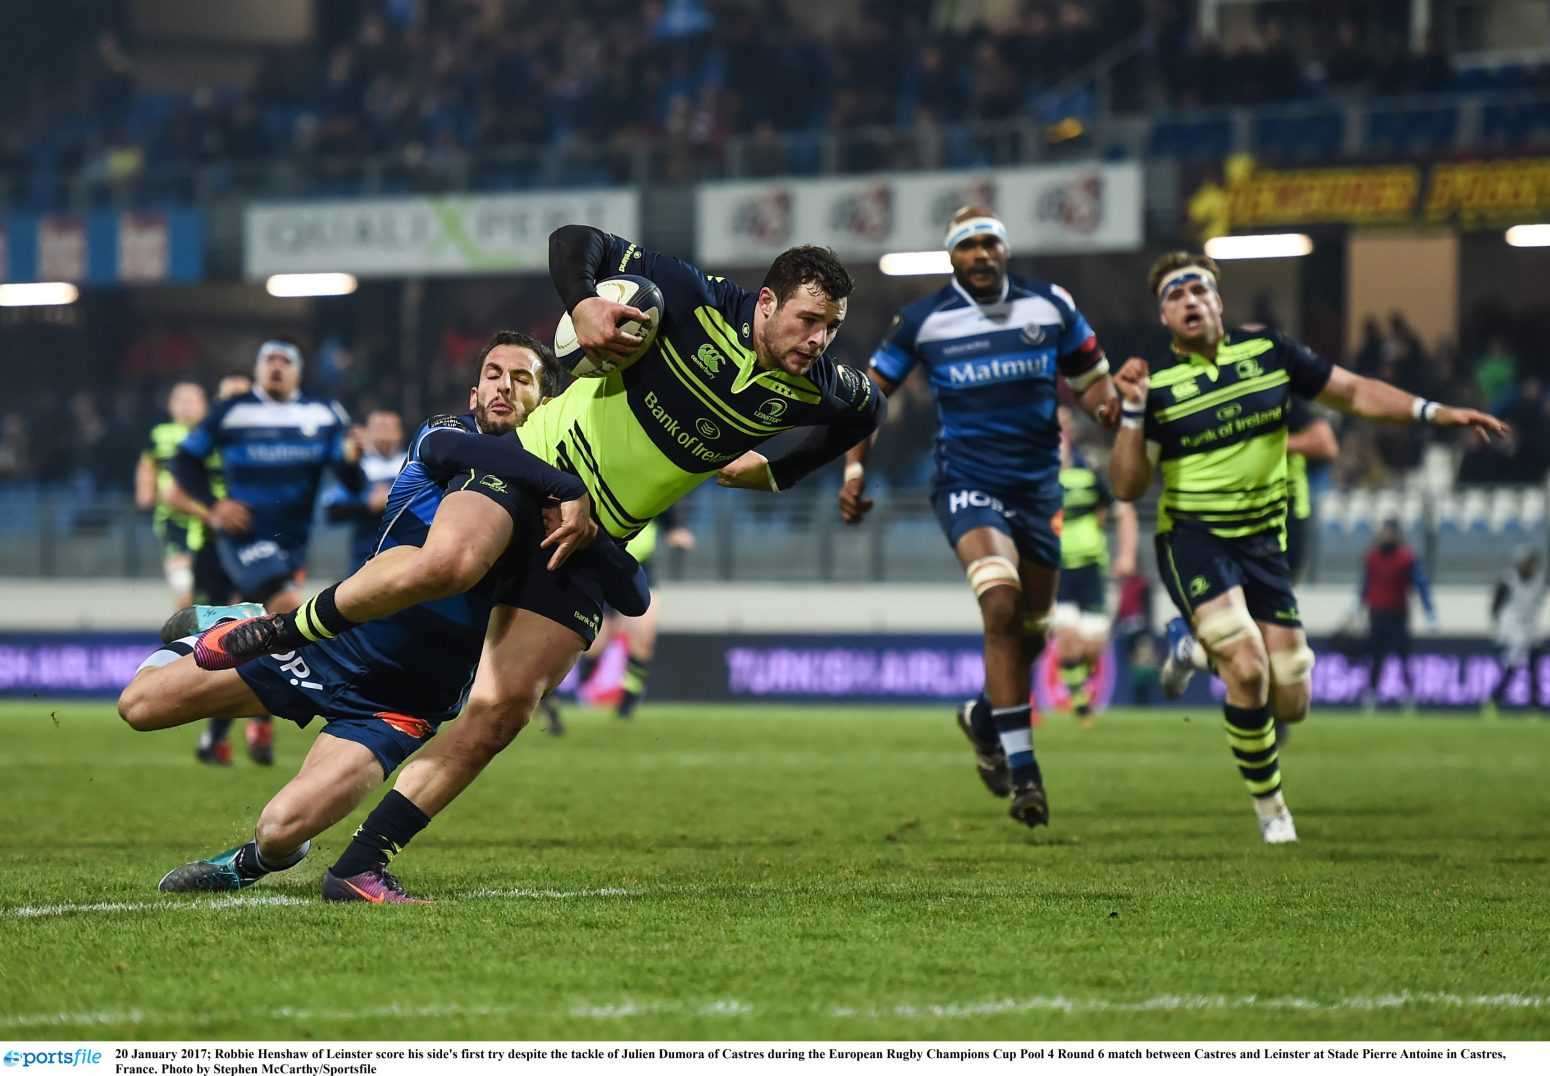 20 January 2017; Robbie Henshaw of Leinster scores his side's first try despite the tackle of Julien Dumora of Castres during the European Rugby Champions Cup Pool 4 Round 6 match between Castres and Leinster at Stade Pierre Antoine in Castres, France. Photo by Stephen McCarthy/Sportsfile